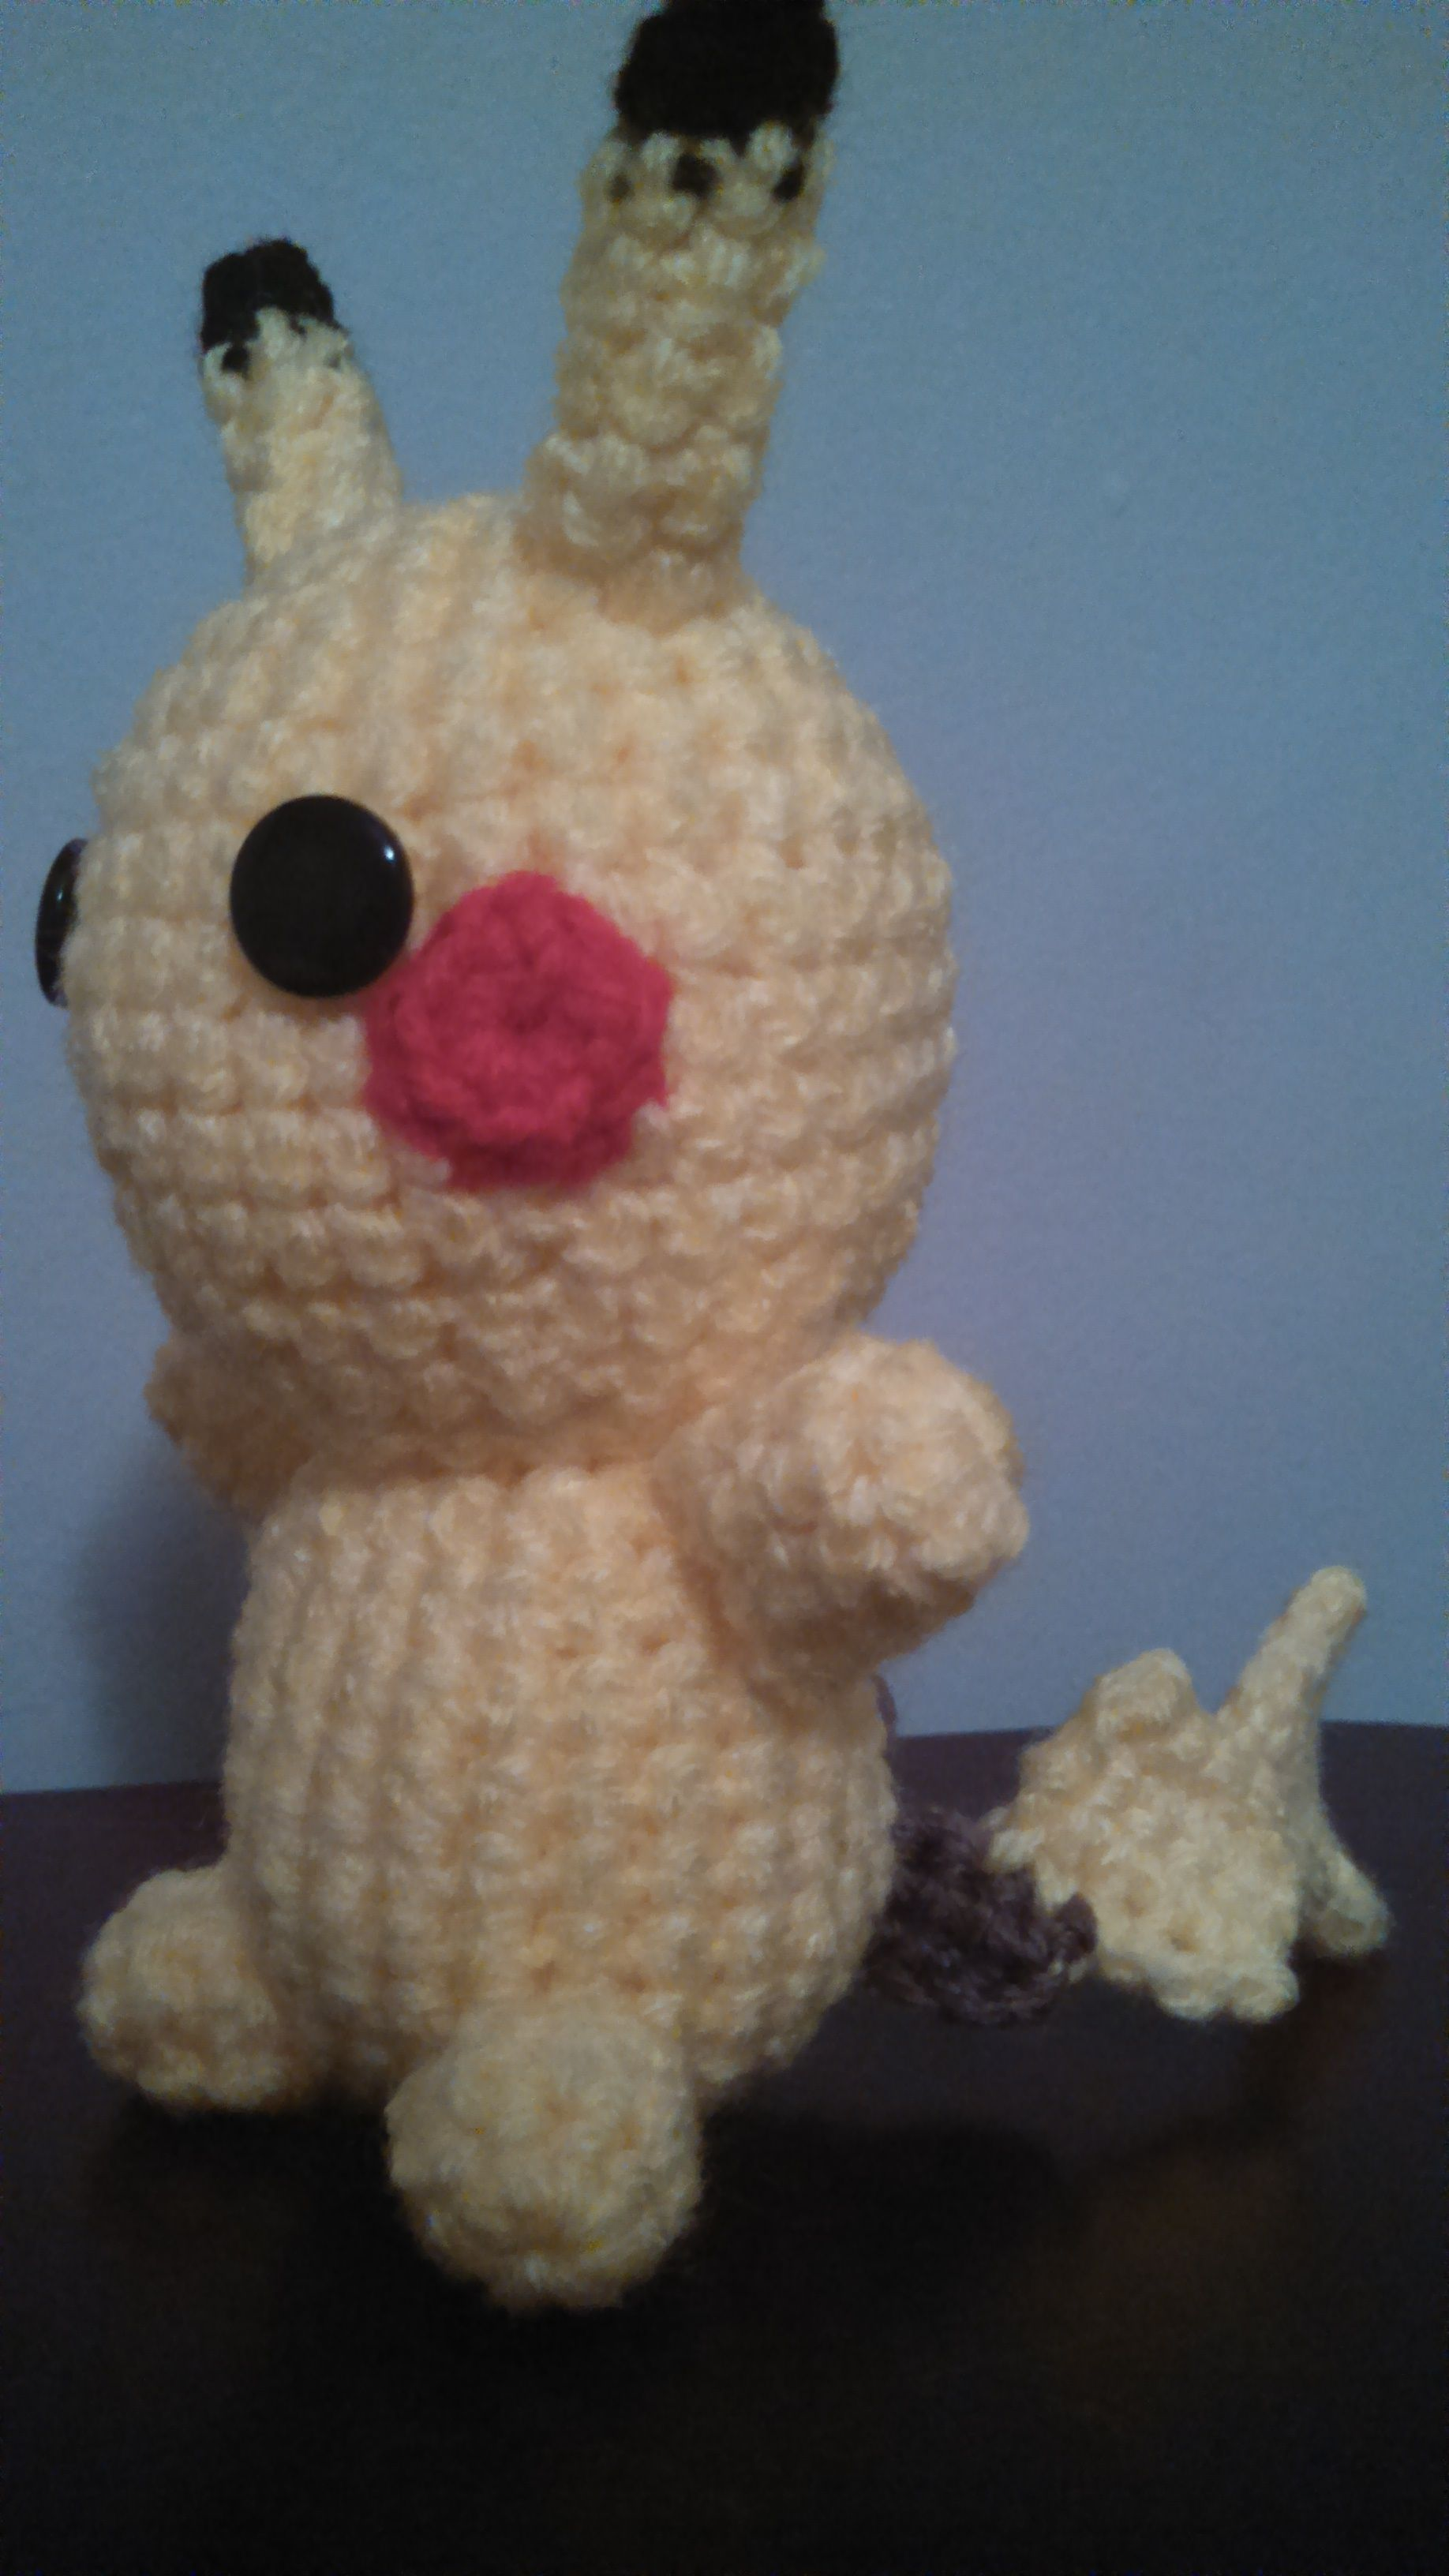 I made this Pikachu ami as a Christmas gift, for the same friend who got the Squirtle